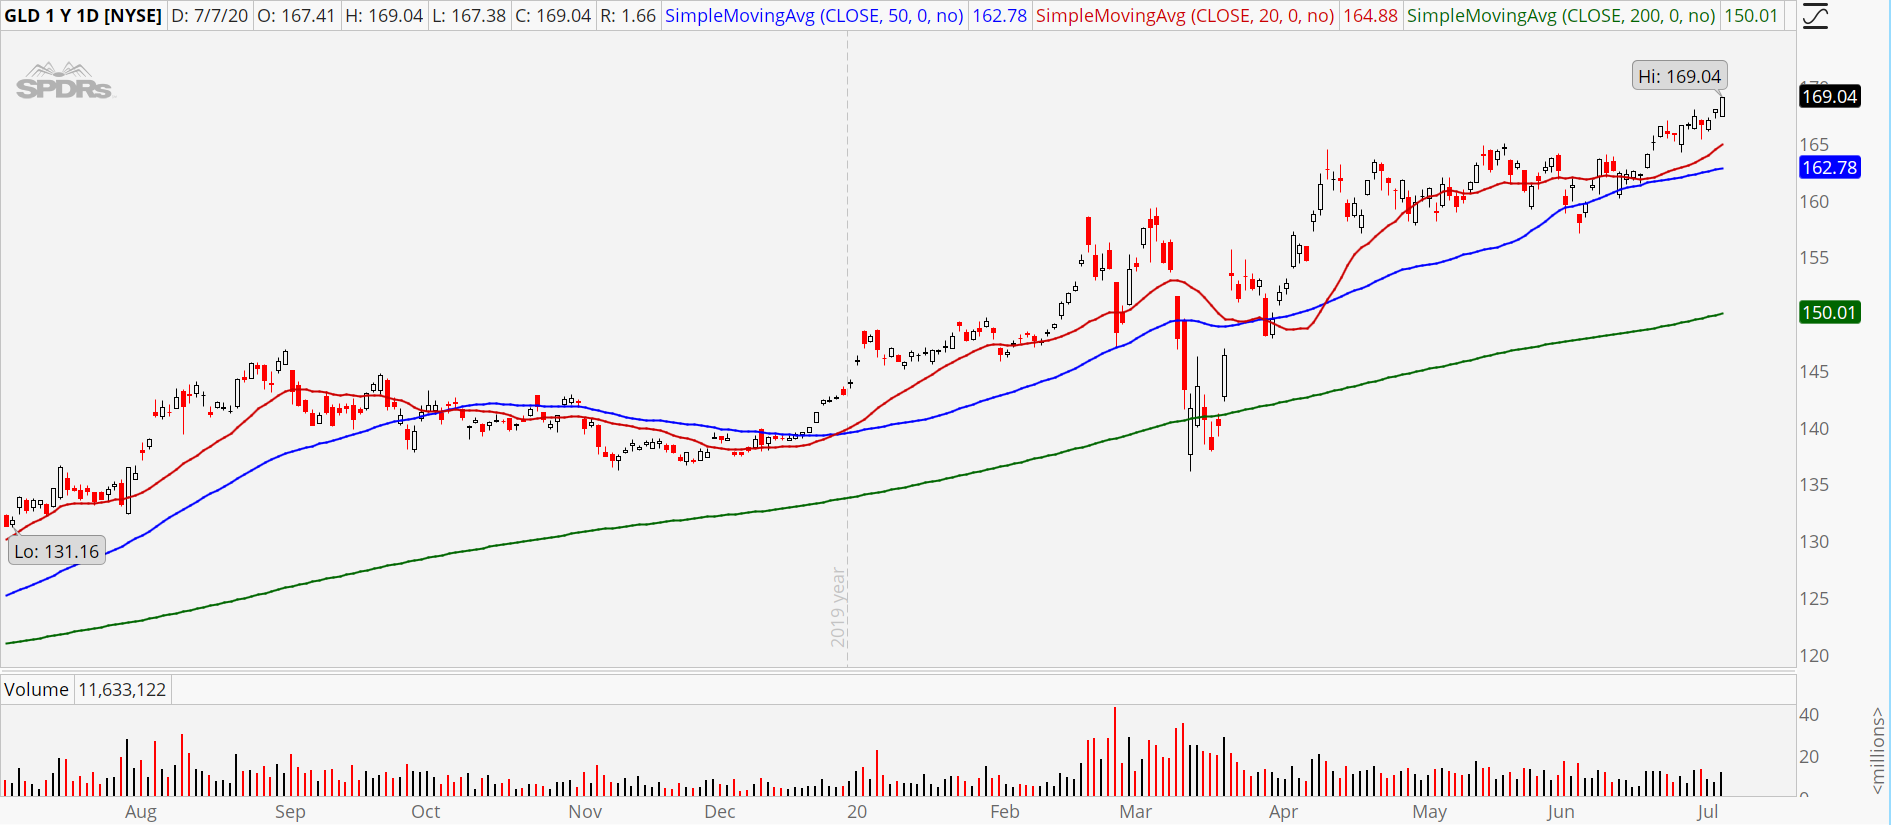 Gold ETF (GLD) stock chart showing strong uptrend